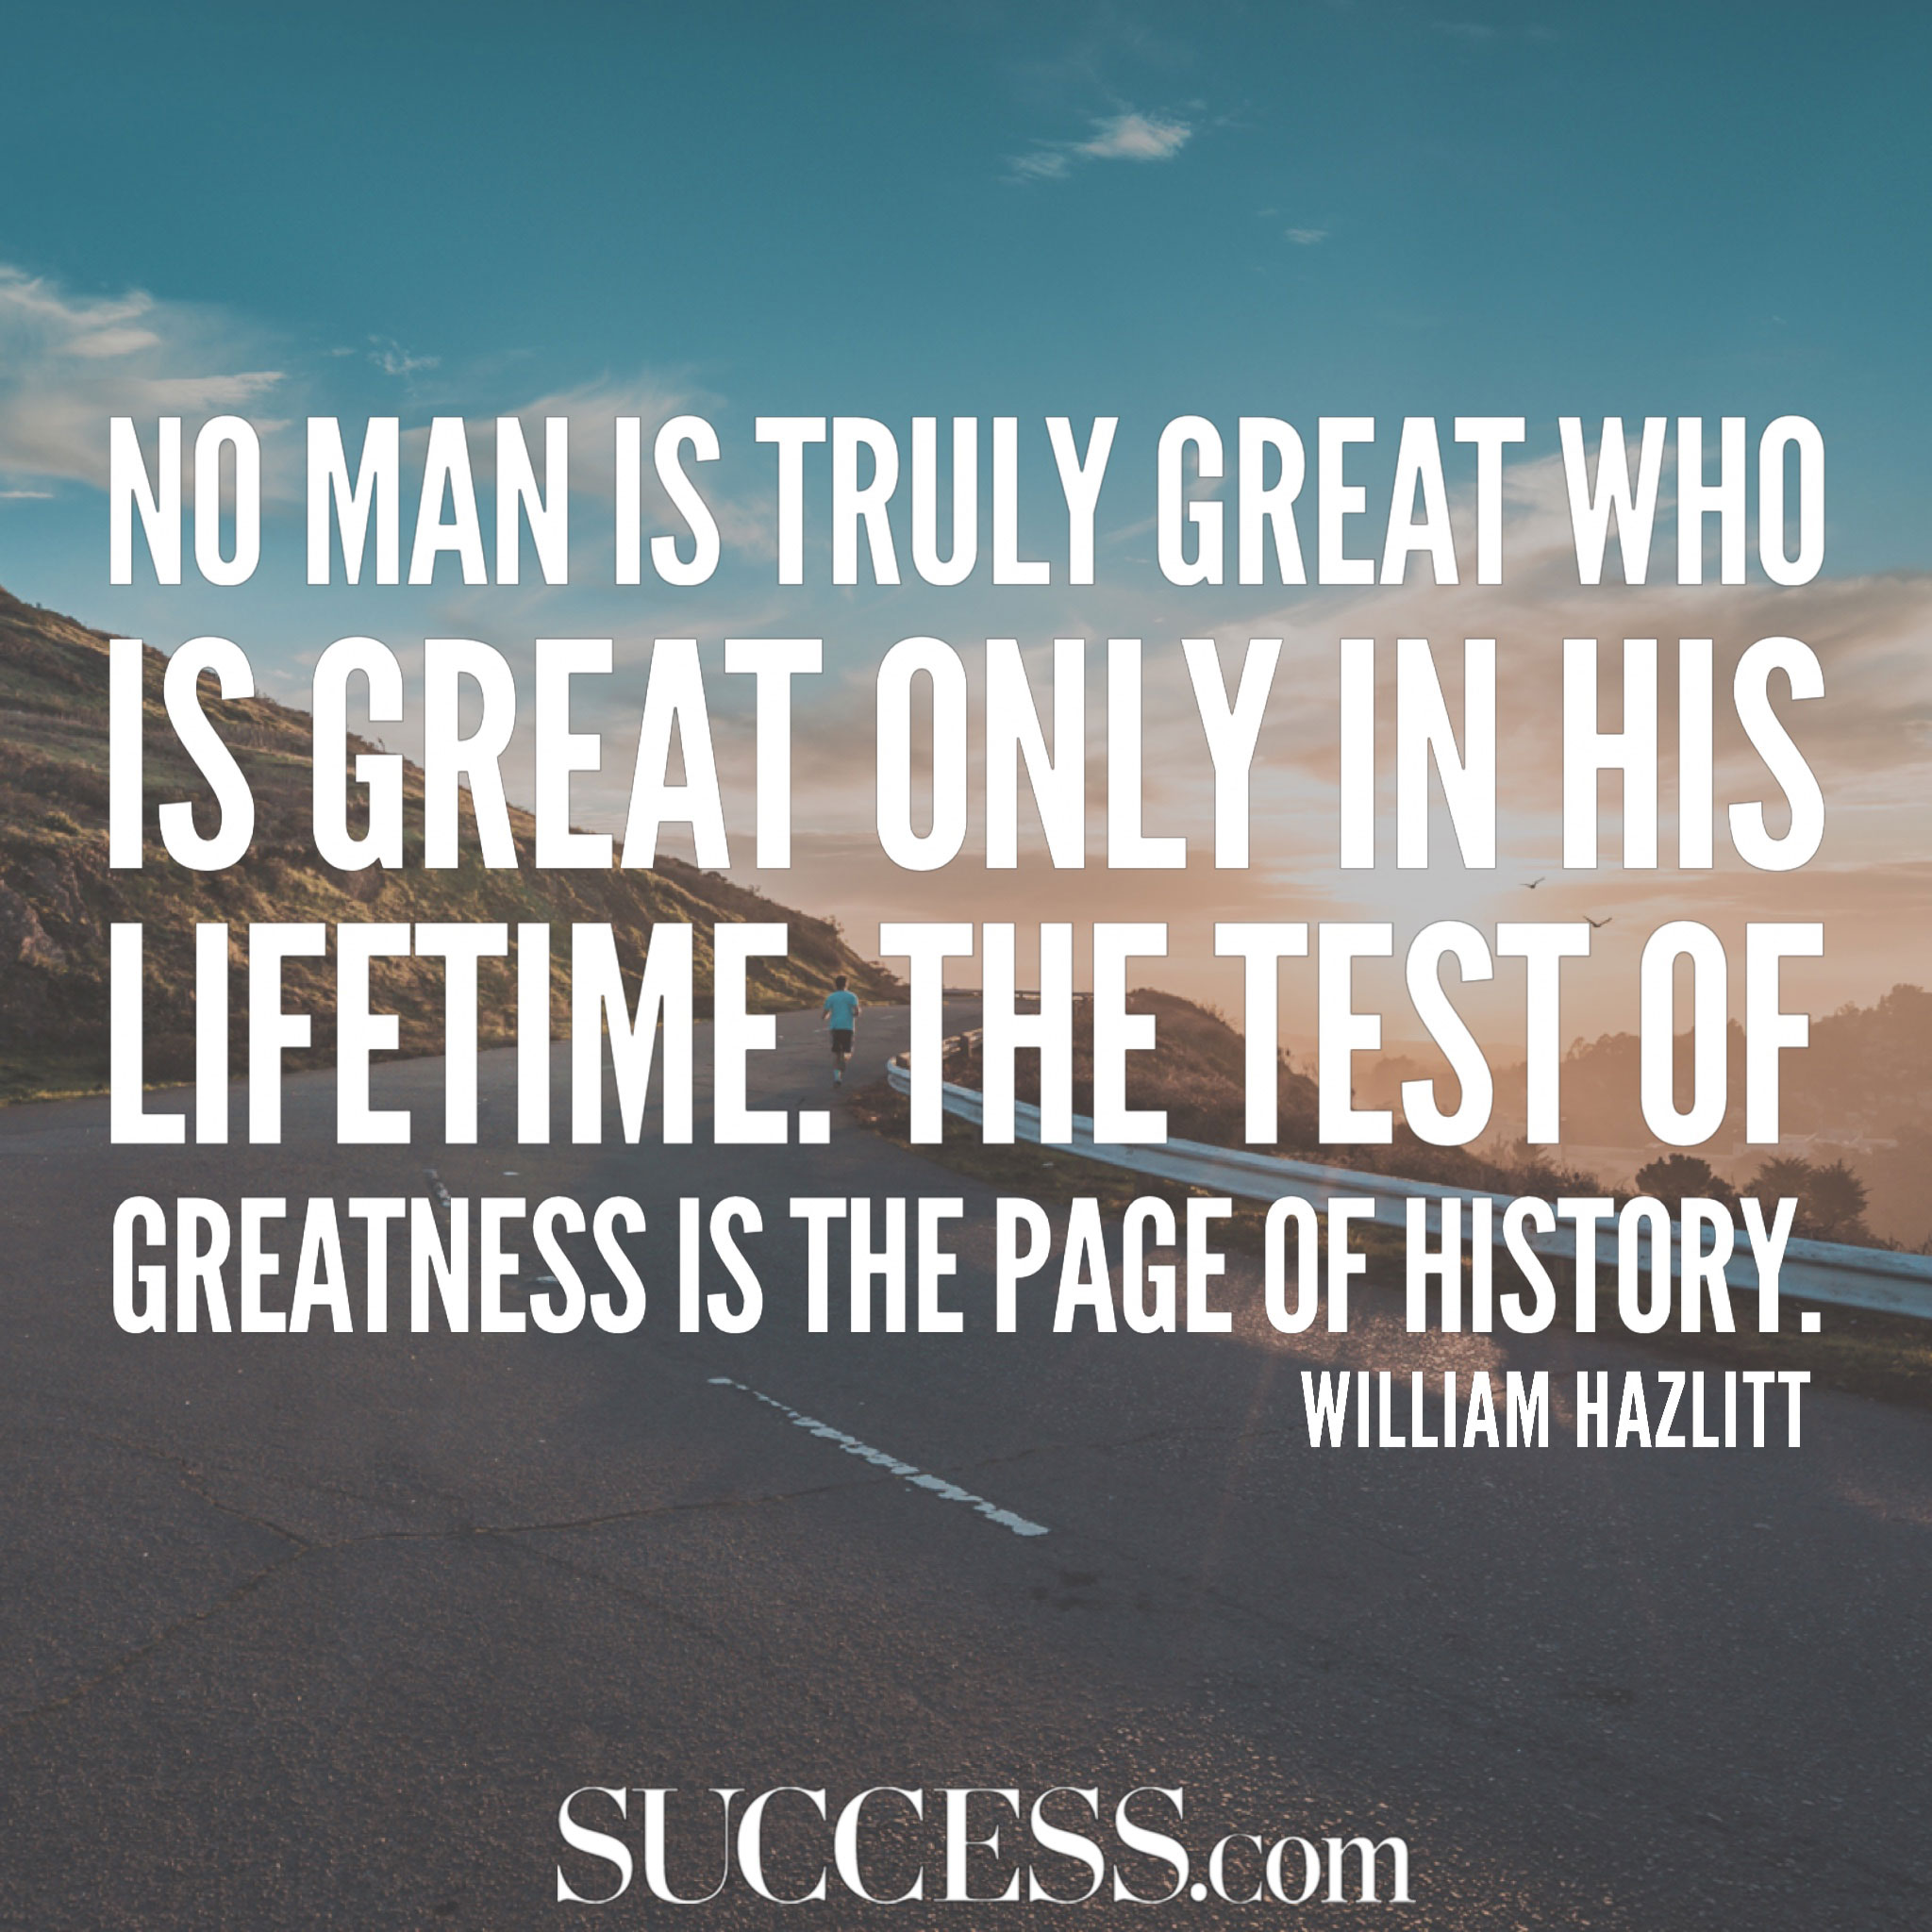 Greatness Quotes 19 Powerful Quotes to Inspire Greatness Greatness Quotes